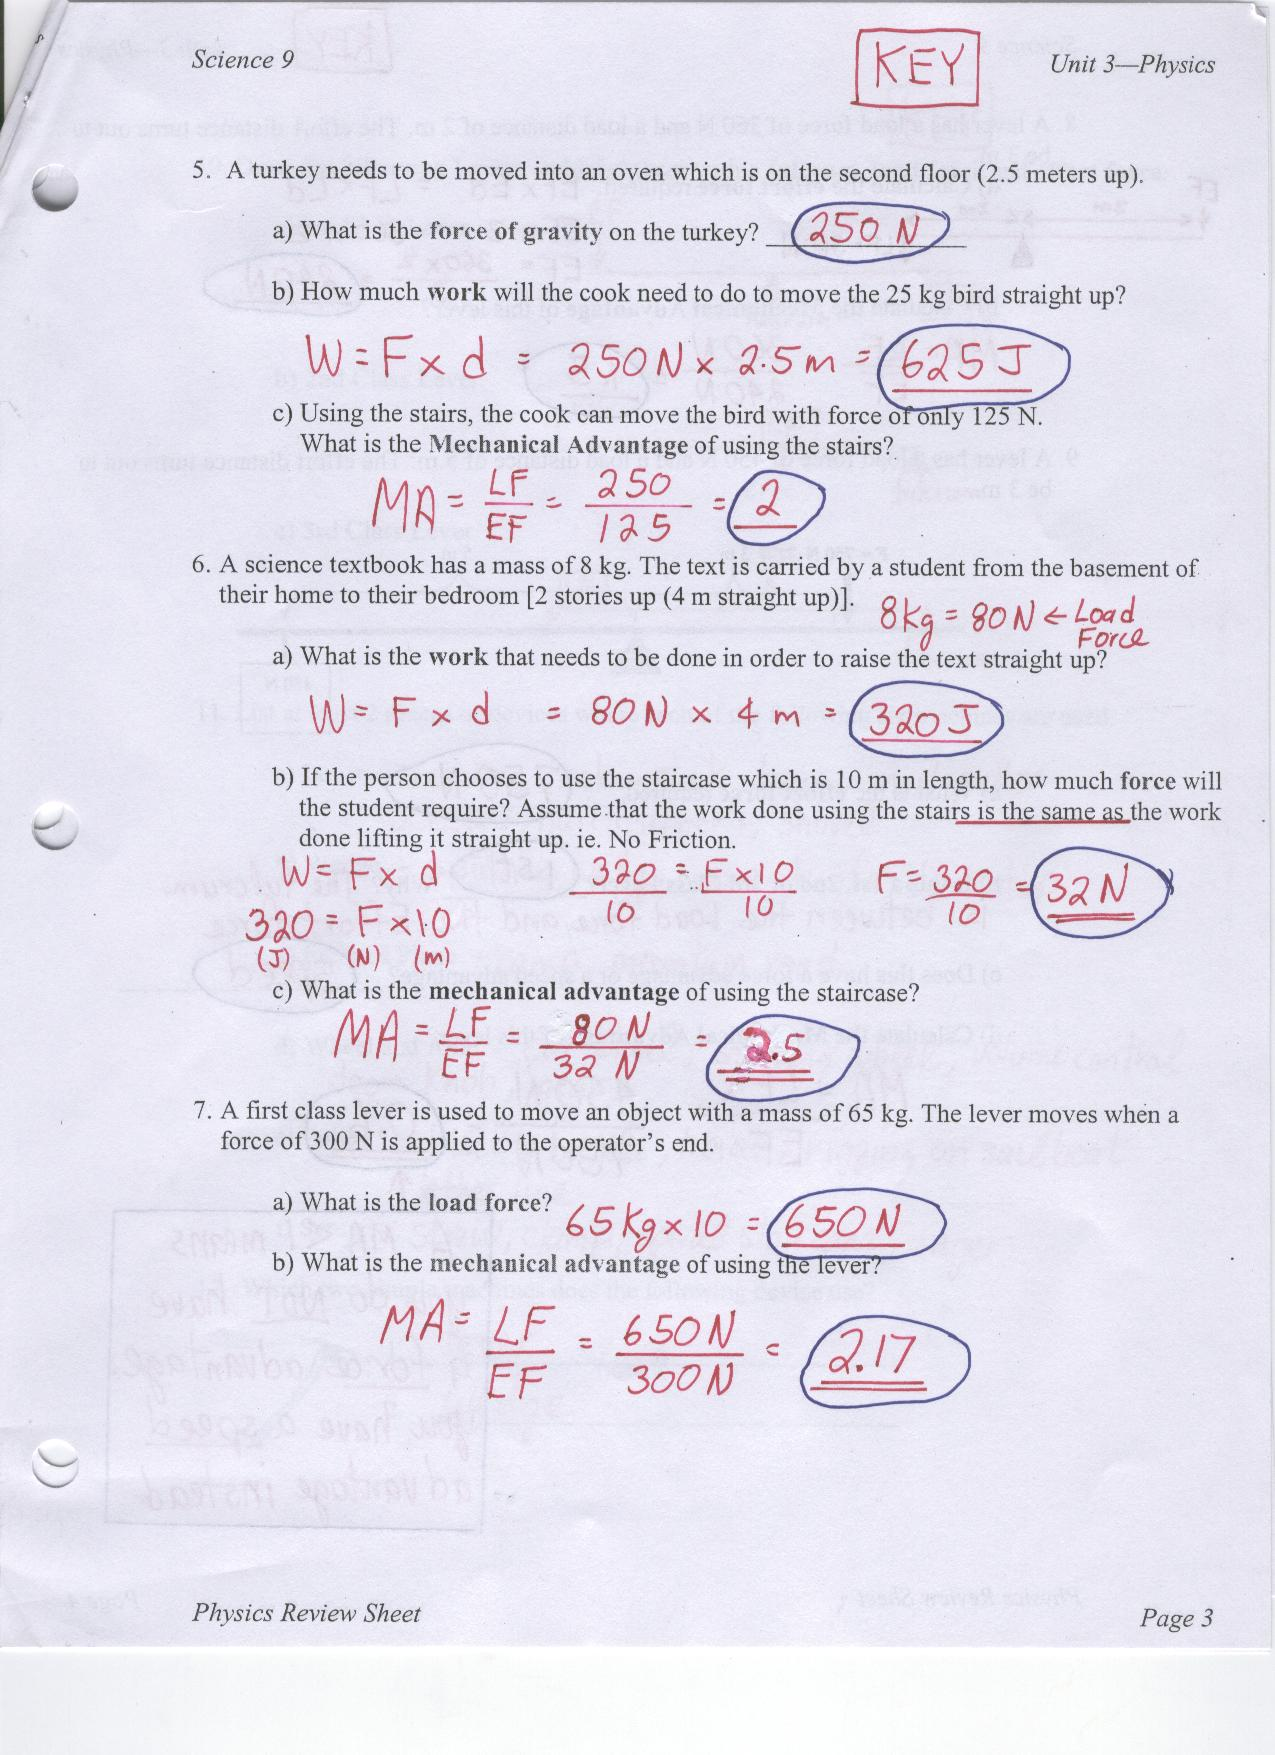 Worksheet, Simple Machines Worksheet, Mechanical Advantage Worksheet ...